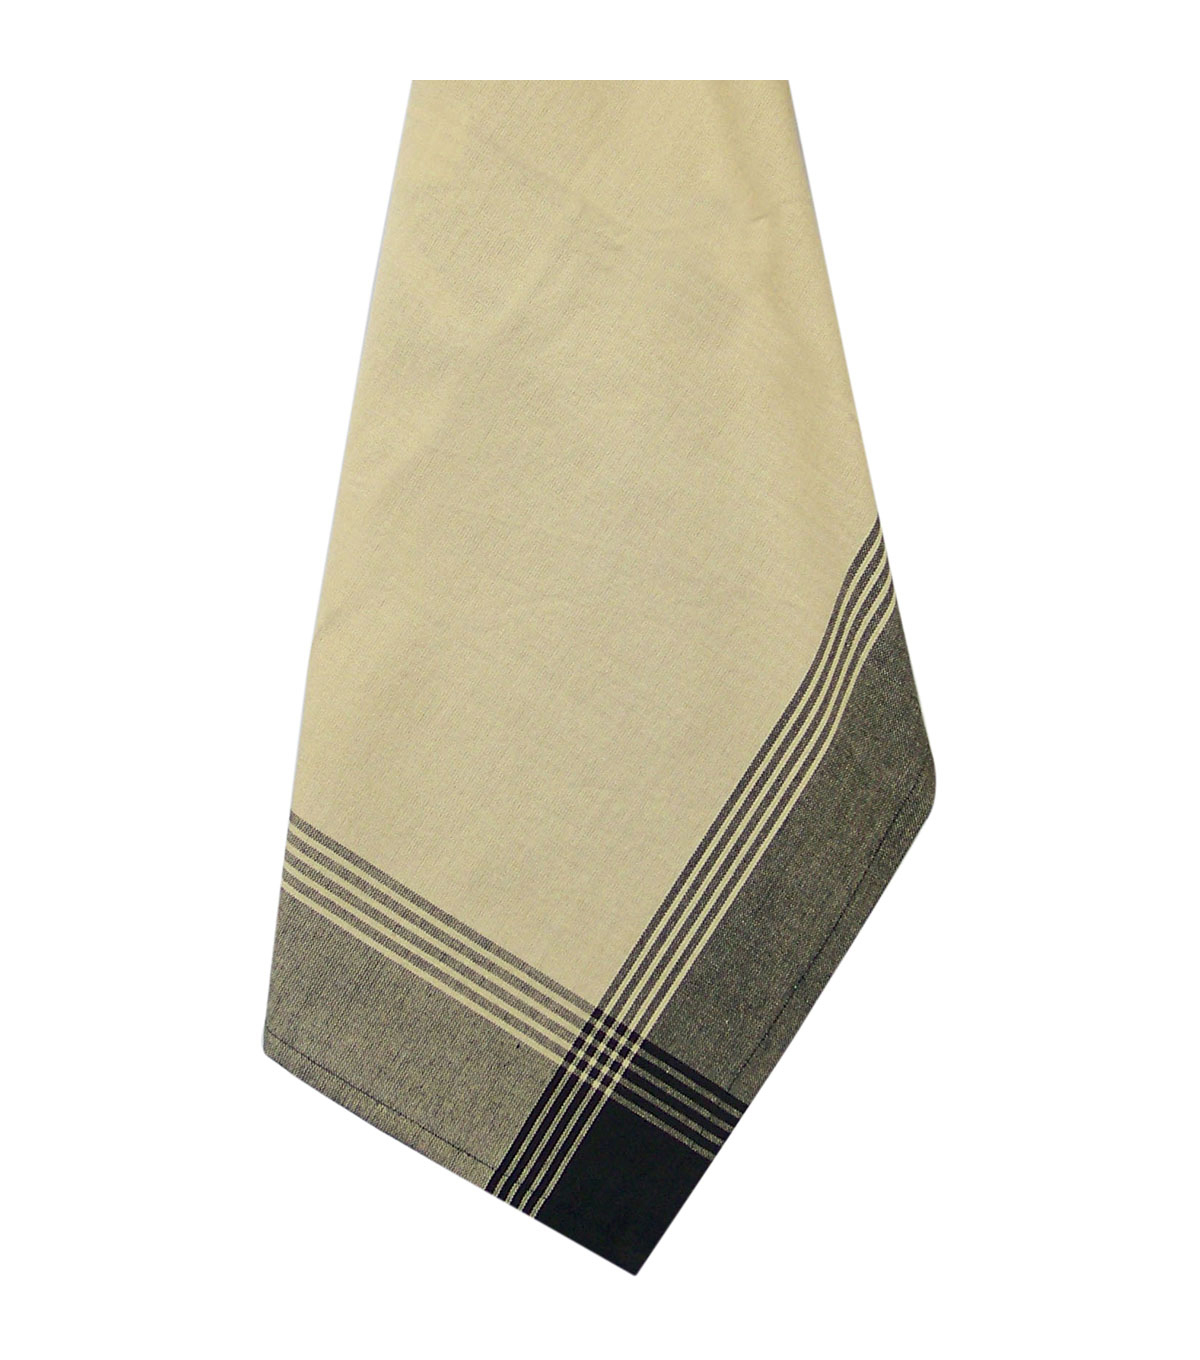 Dunroven House McLeod Tea Dyed Towel Stripes Black